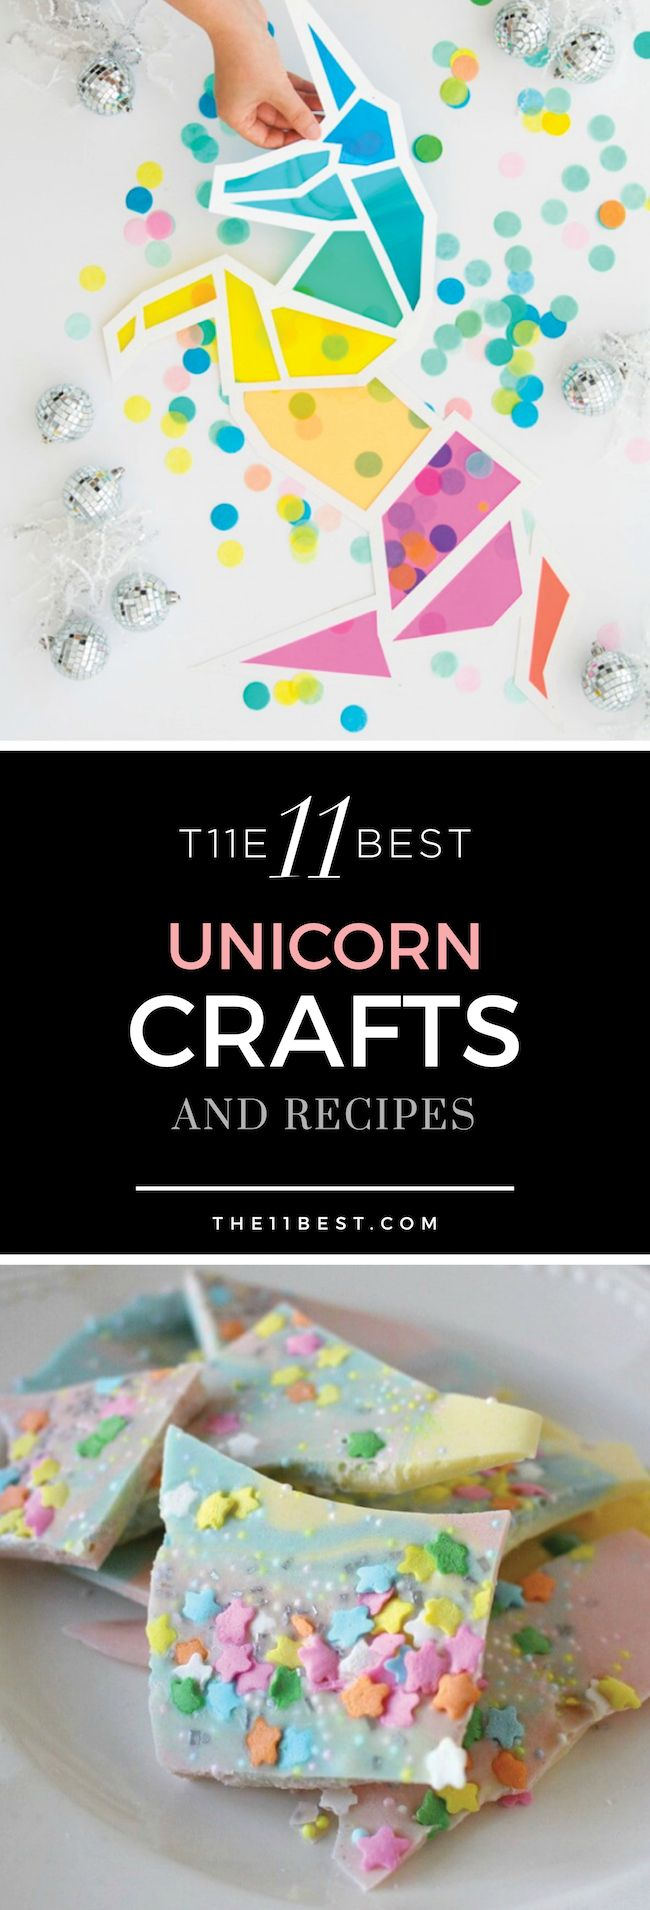 The 11 Best Unicorn Crafts - Birthday party crafts, Rainbow crafts, Unicorn crafts, Arts and crafts for teens, Craft party, Birthday crafts - Unicorn crafts, decor, and recipes that are magical! Here are the 11 Best Unicorn Crafts we could find!